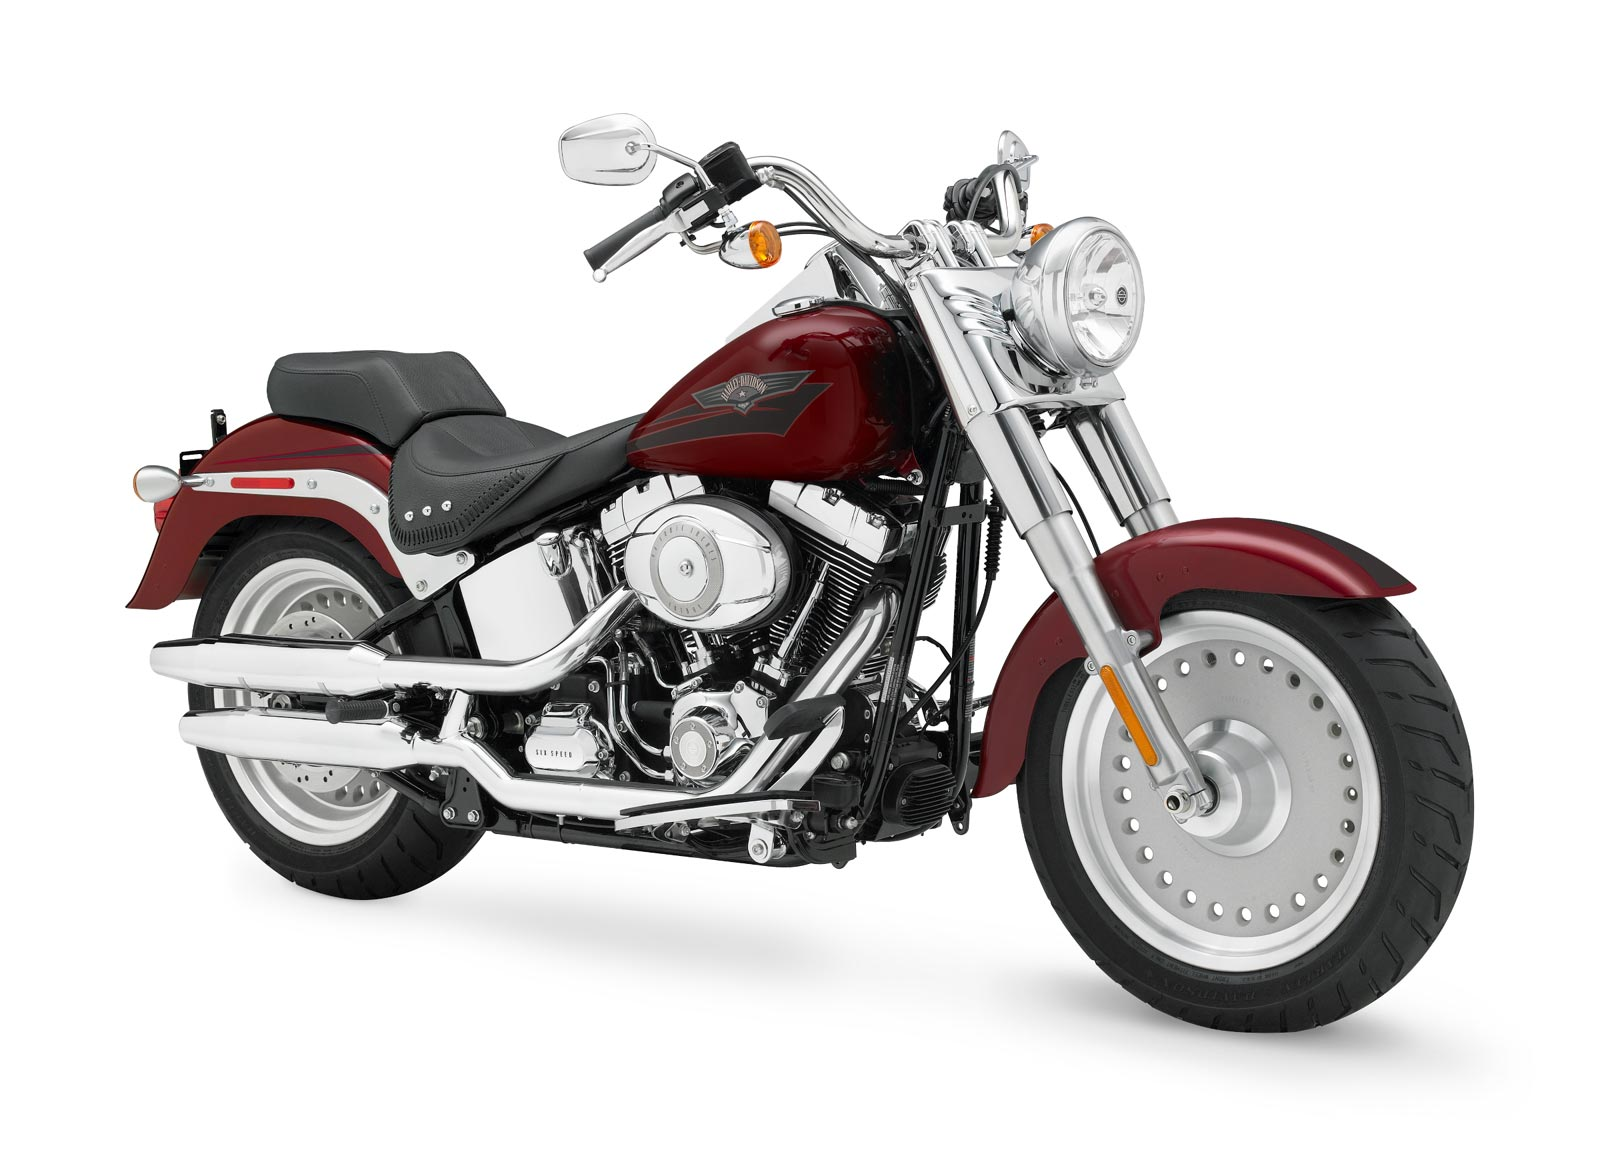 harley davidson fat boy specs 2007 2008 autoevolution. Black Bedroom Furniture Sets. Home Design Ideas